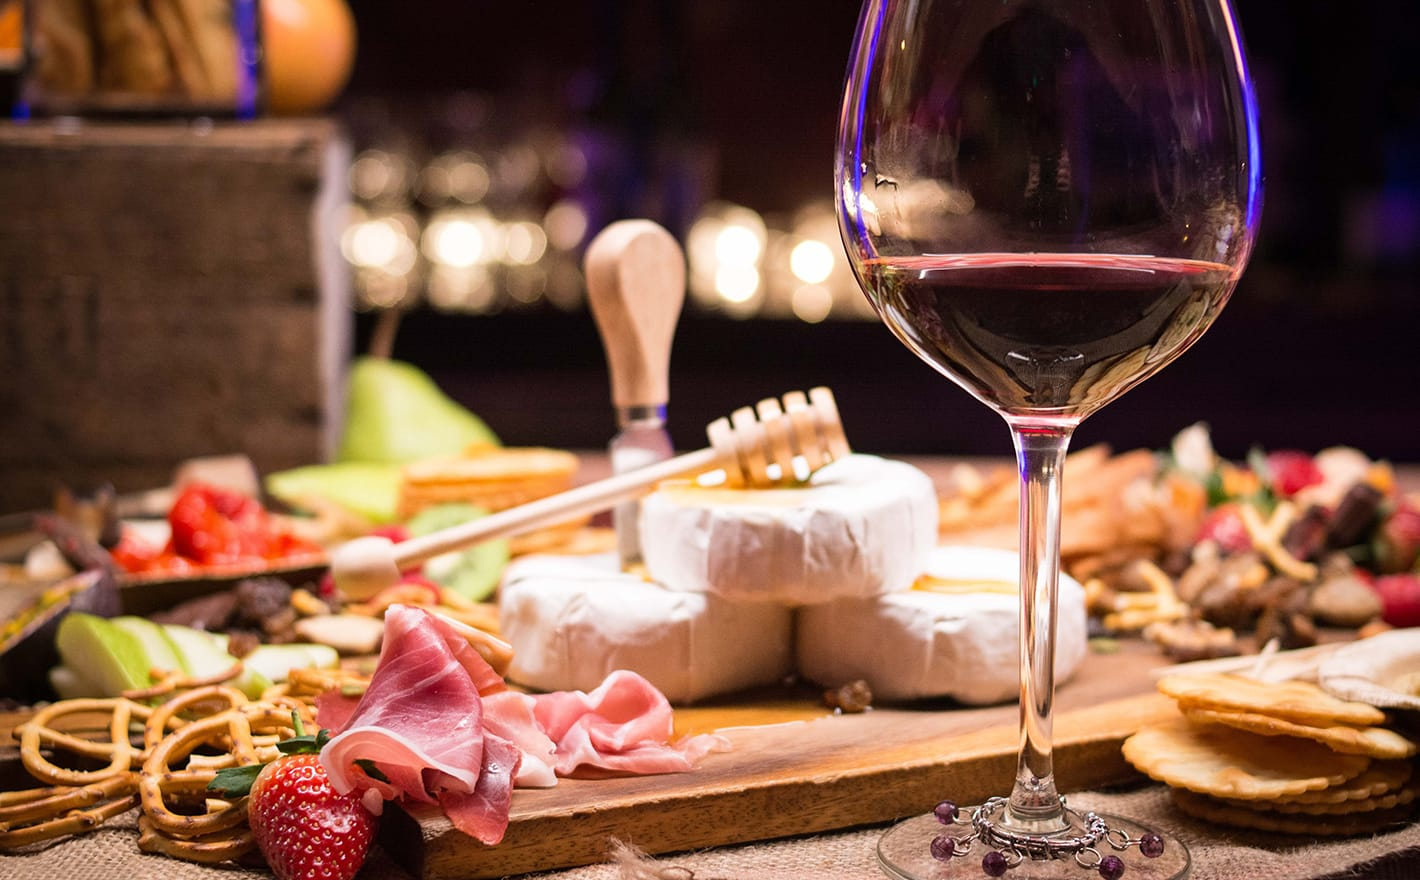 Charcuterie board and glass of red wine in Rome, Italy